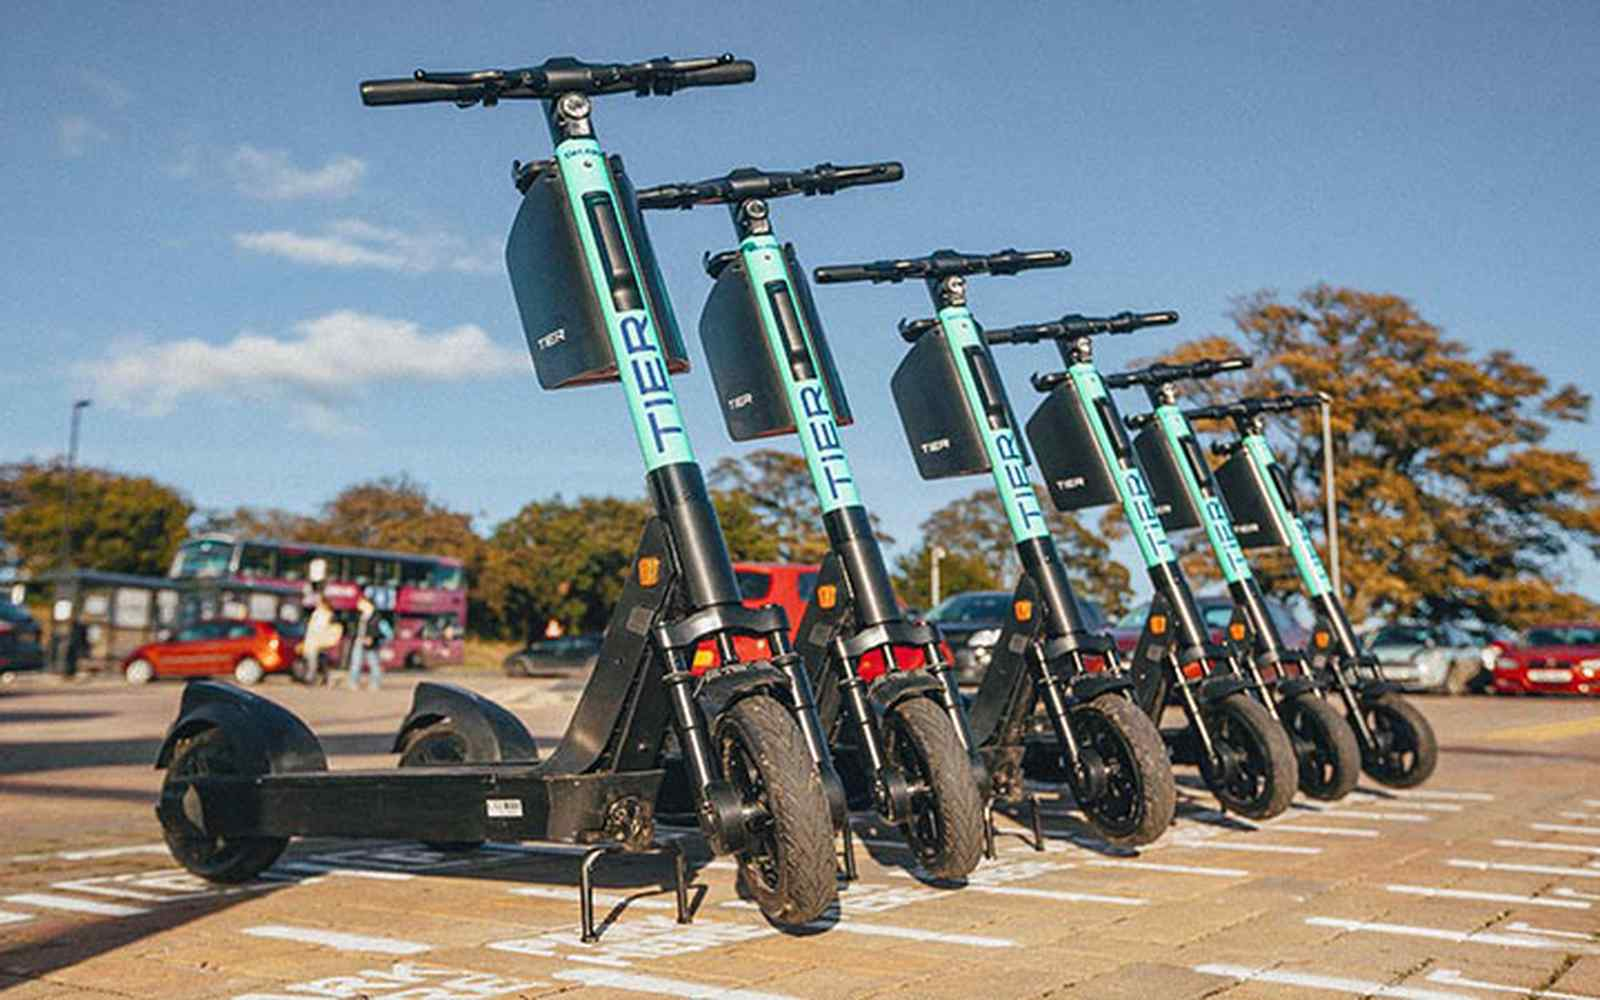 E-scooters lined up in a street